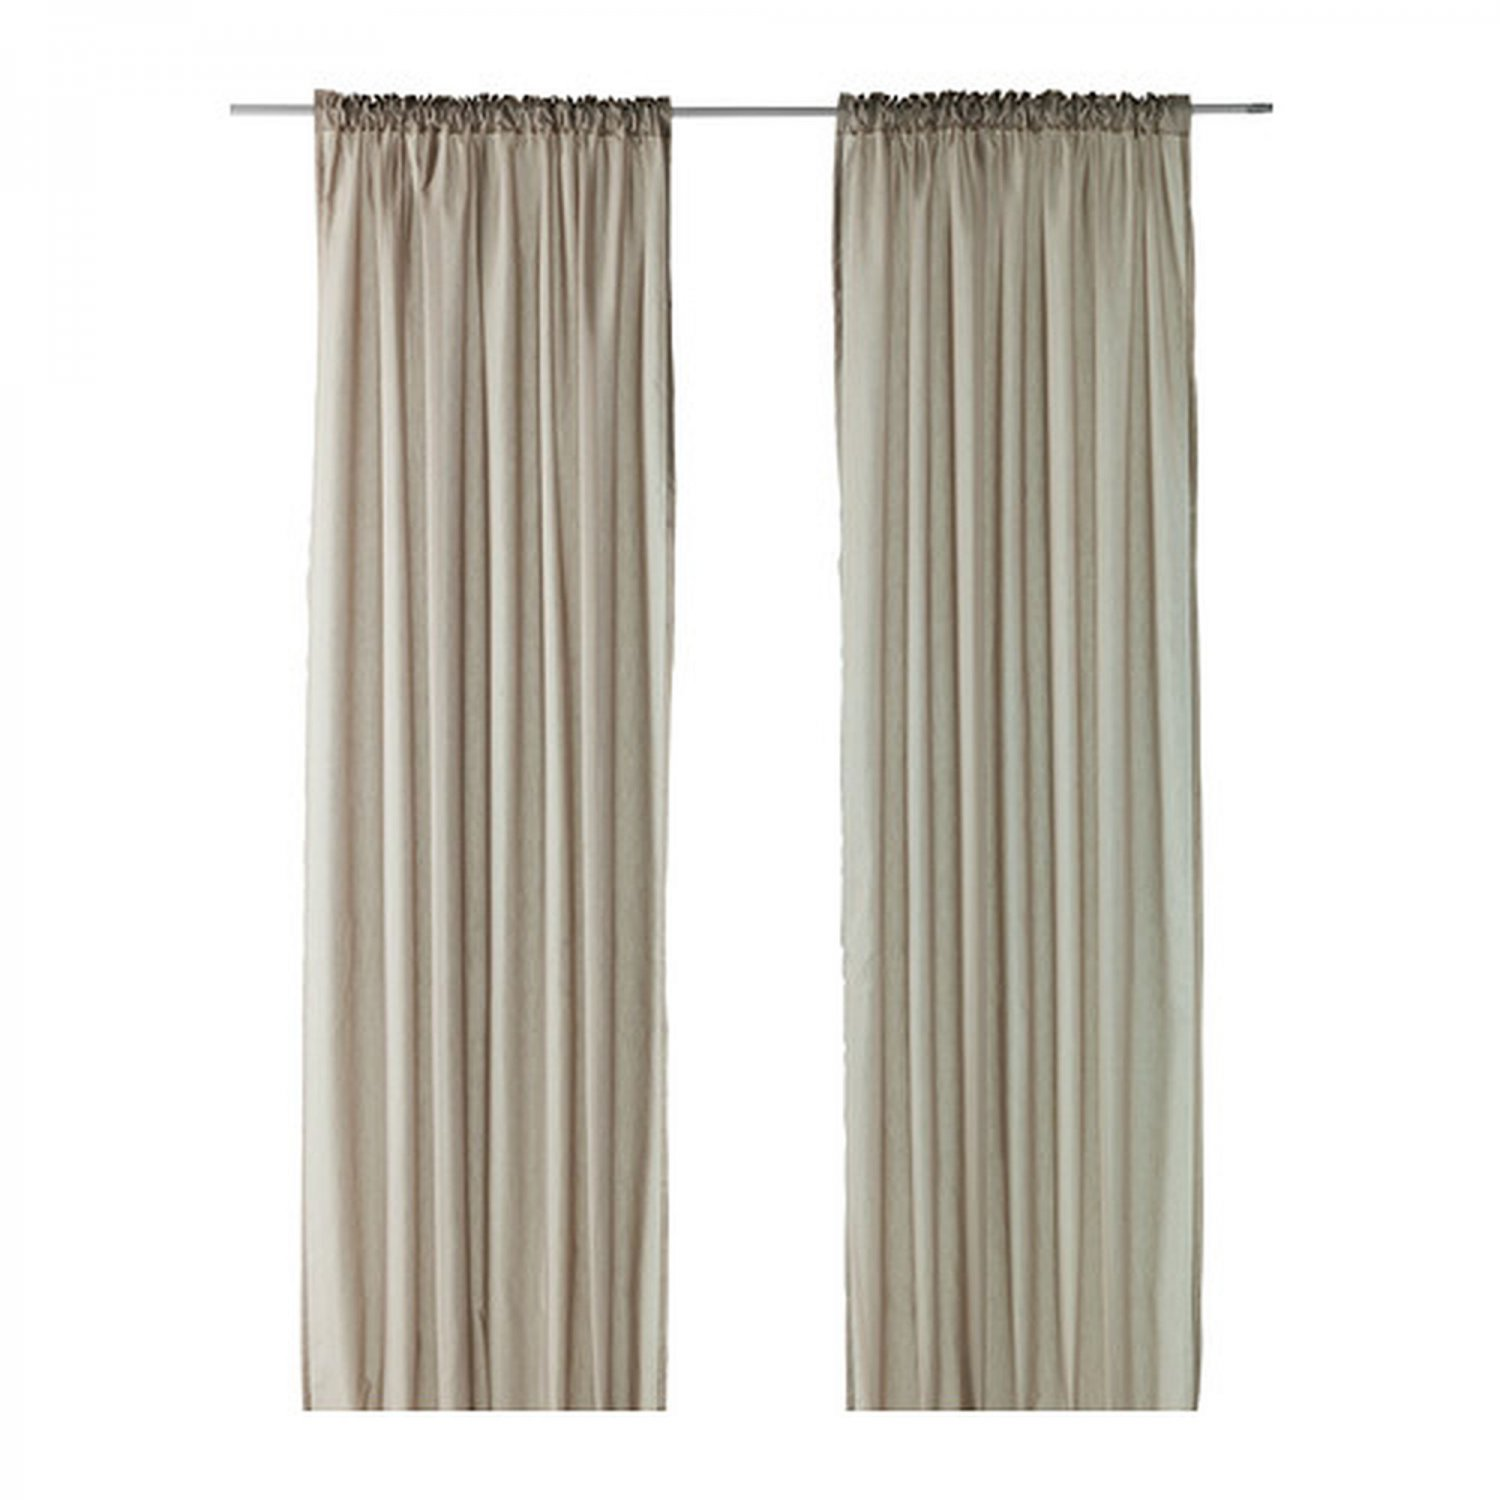 Ikea vivan curtains drapes beige 2 panels mushroom taupe for Ikea curtain rods uk